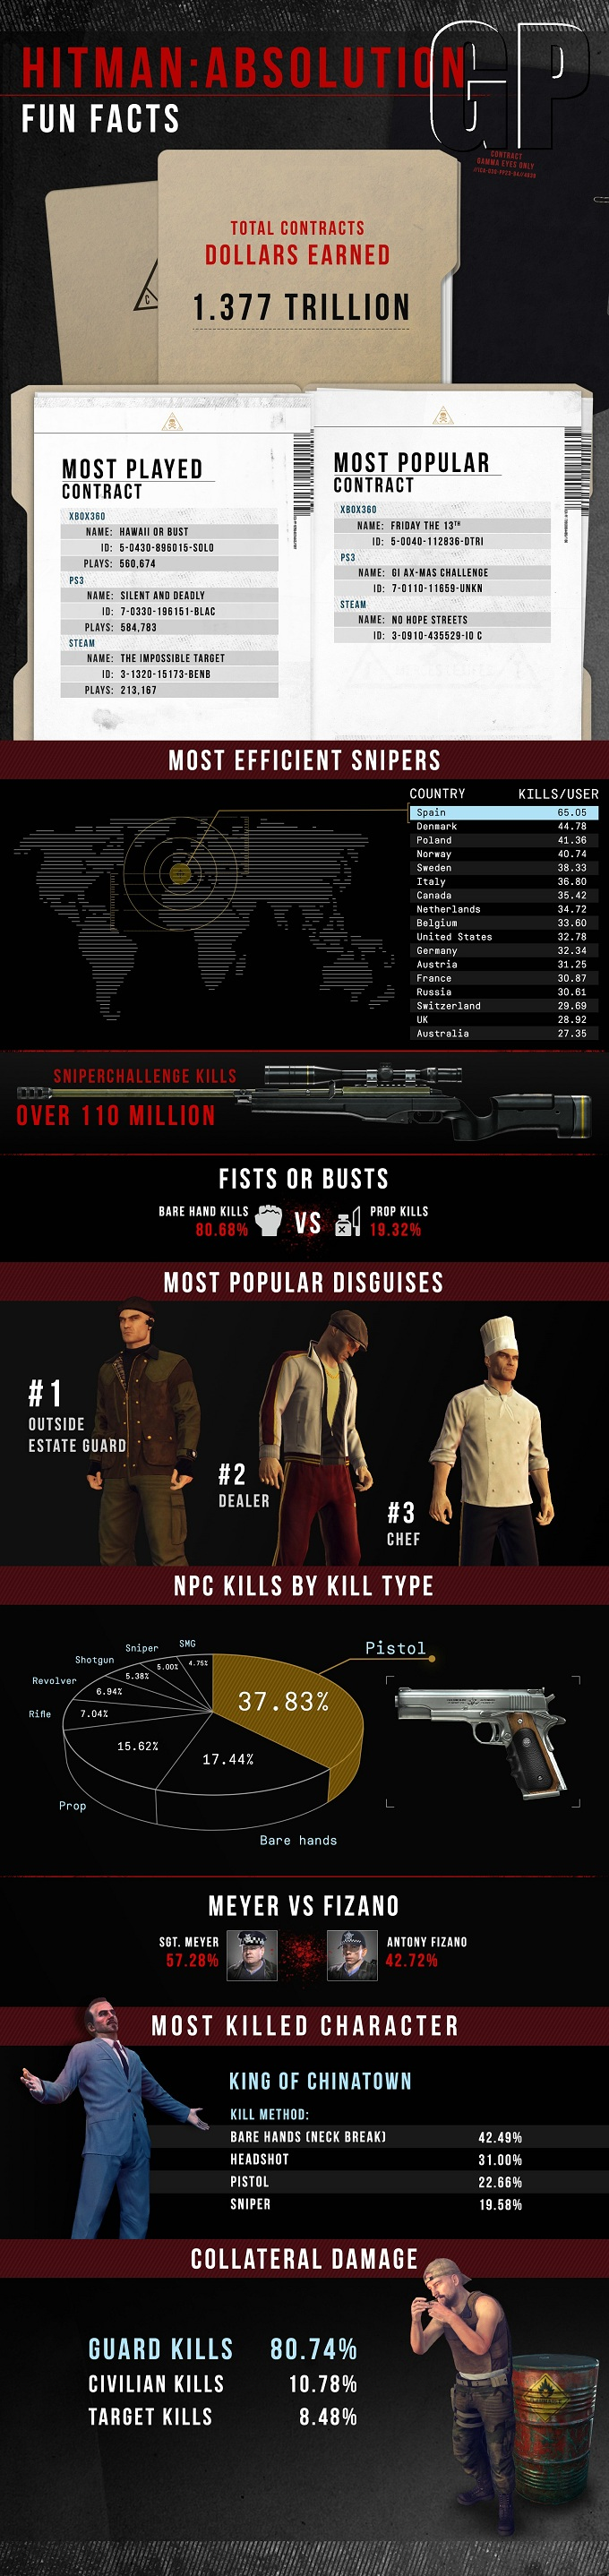 4752HitmanAbsolution Contracts infographic An Interesting Hitman:Absolution Infographic